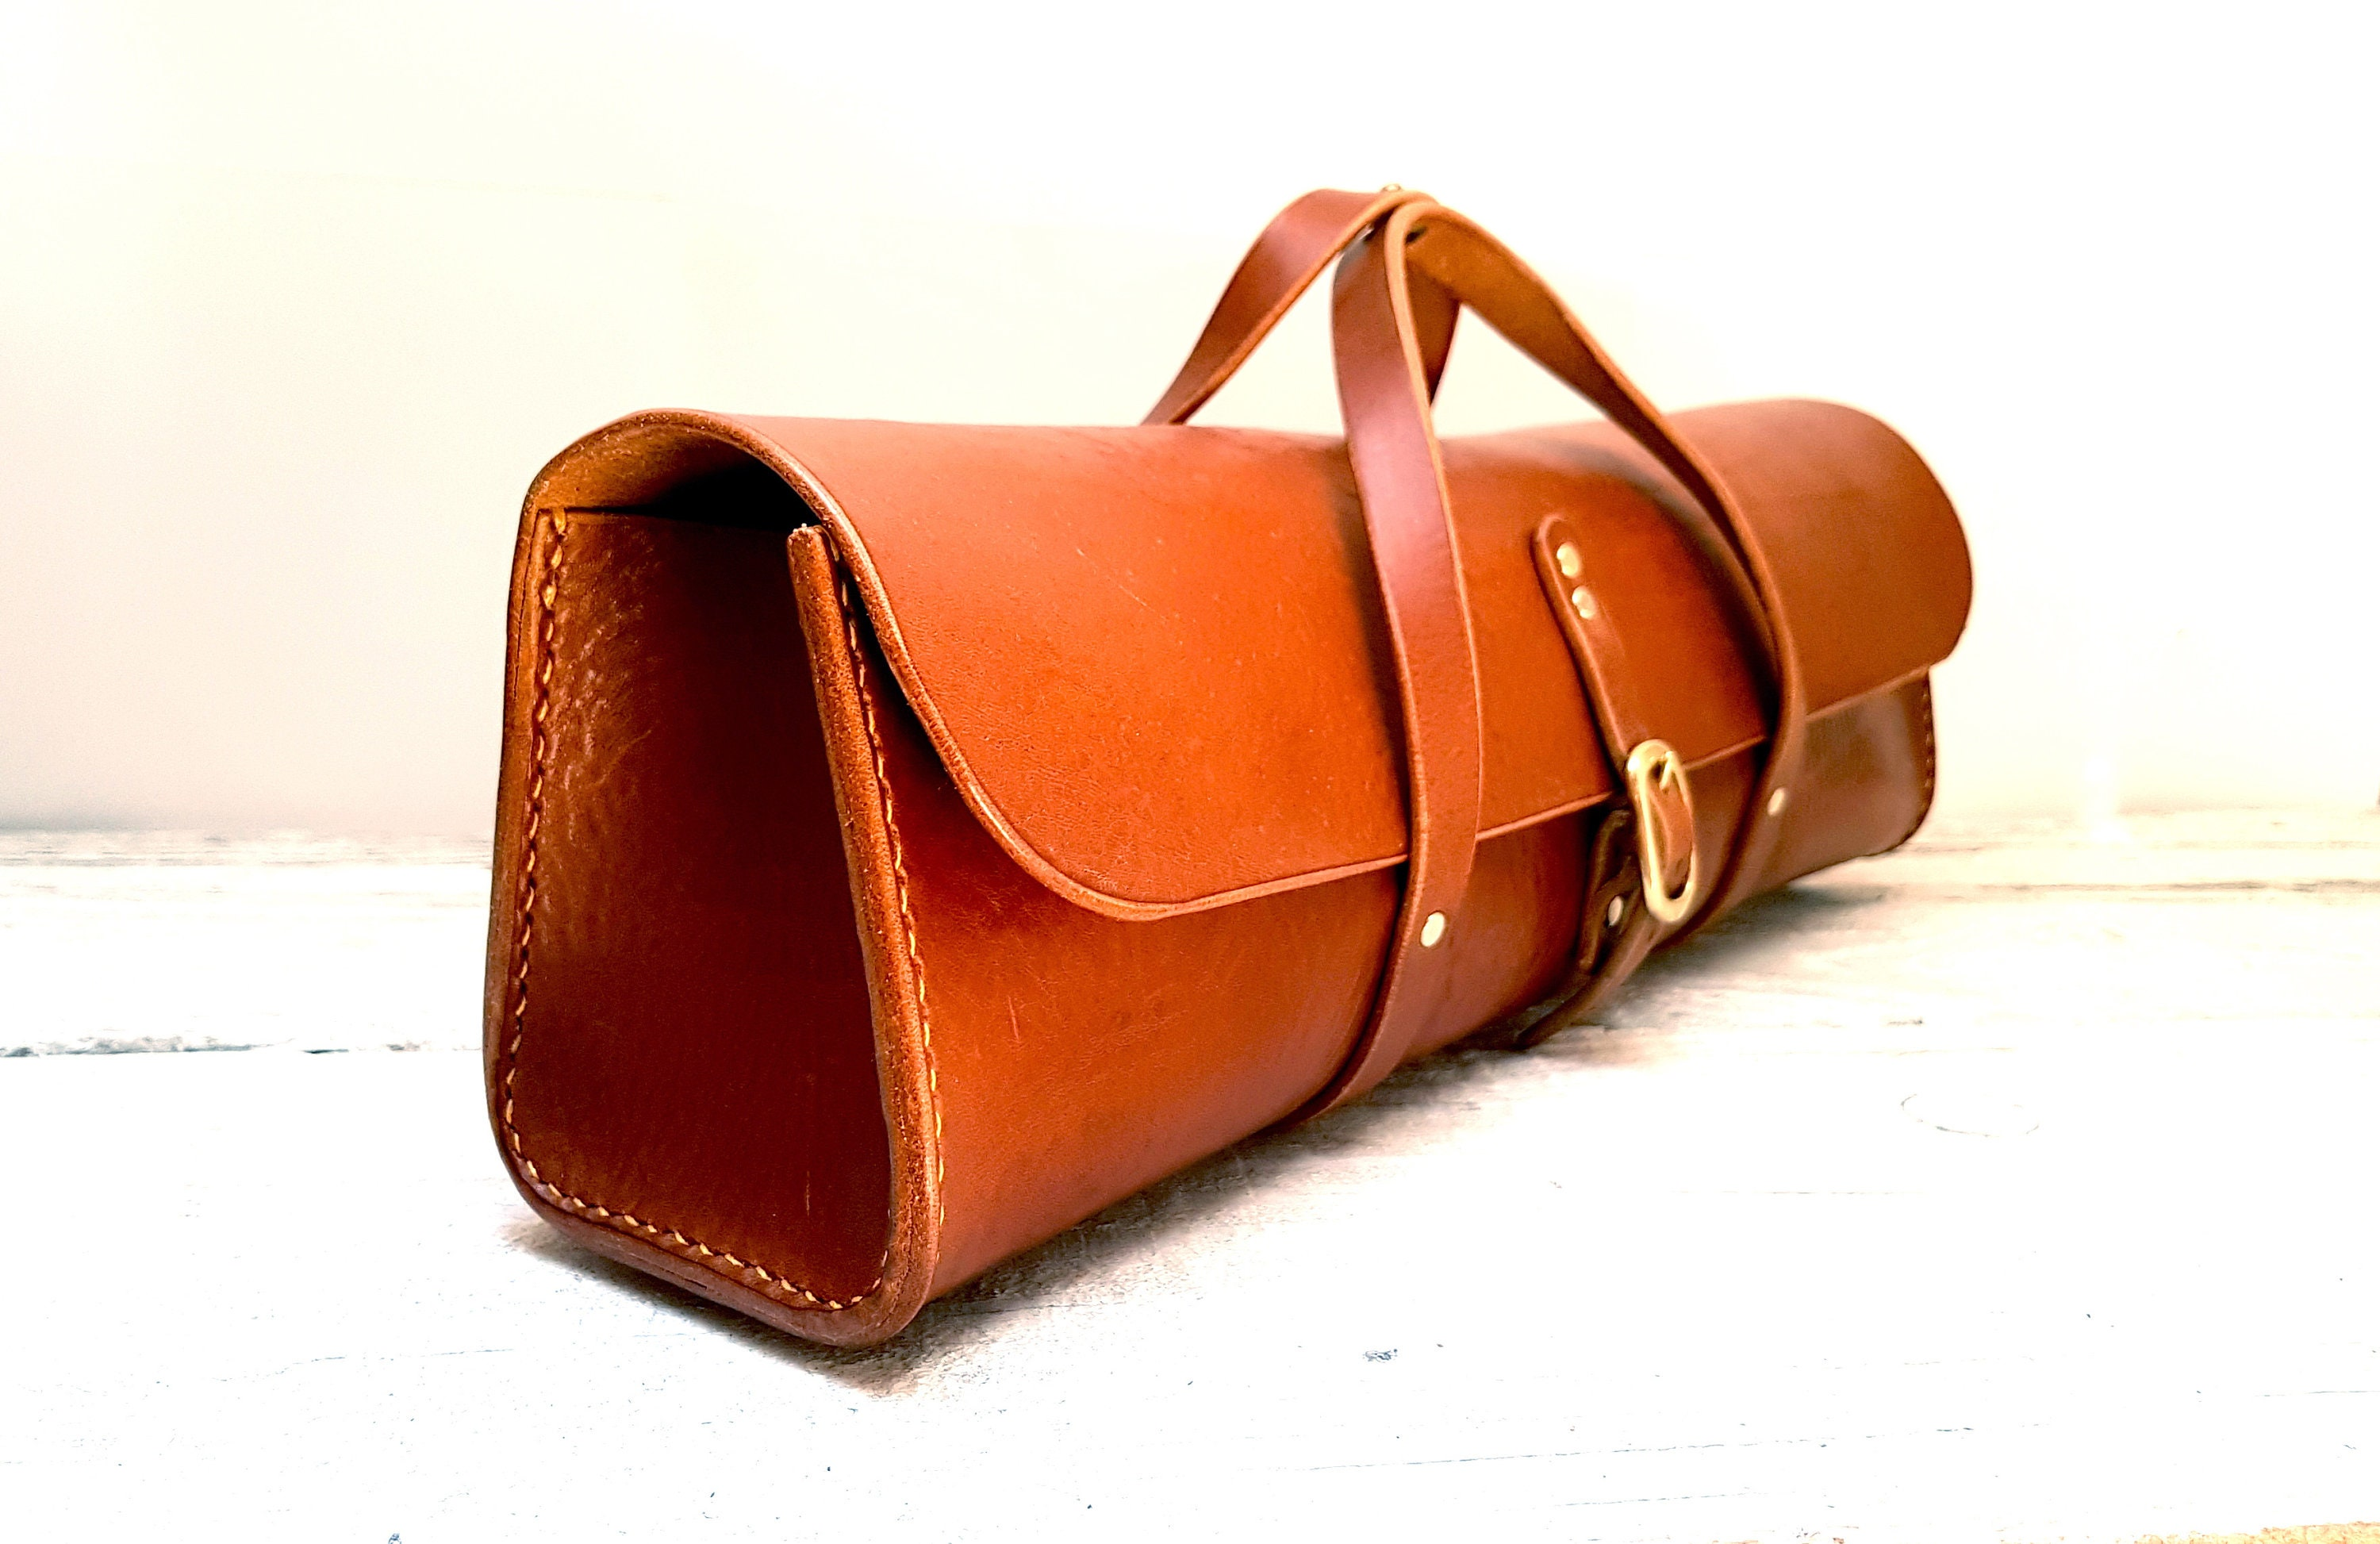 Handmade Leather Bags Canada - CEAGESP 639462556fca